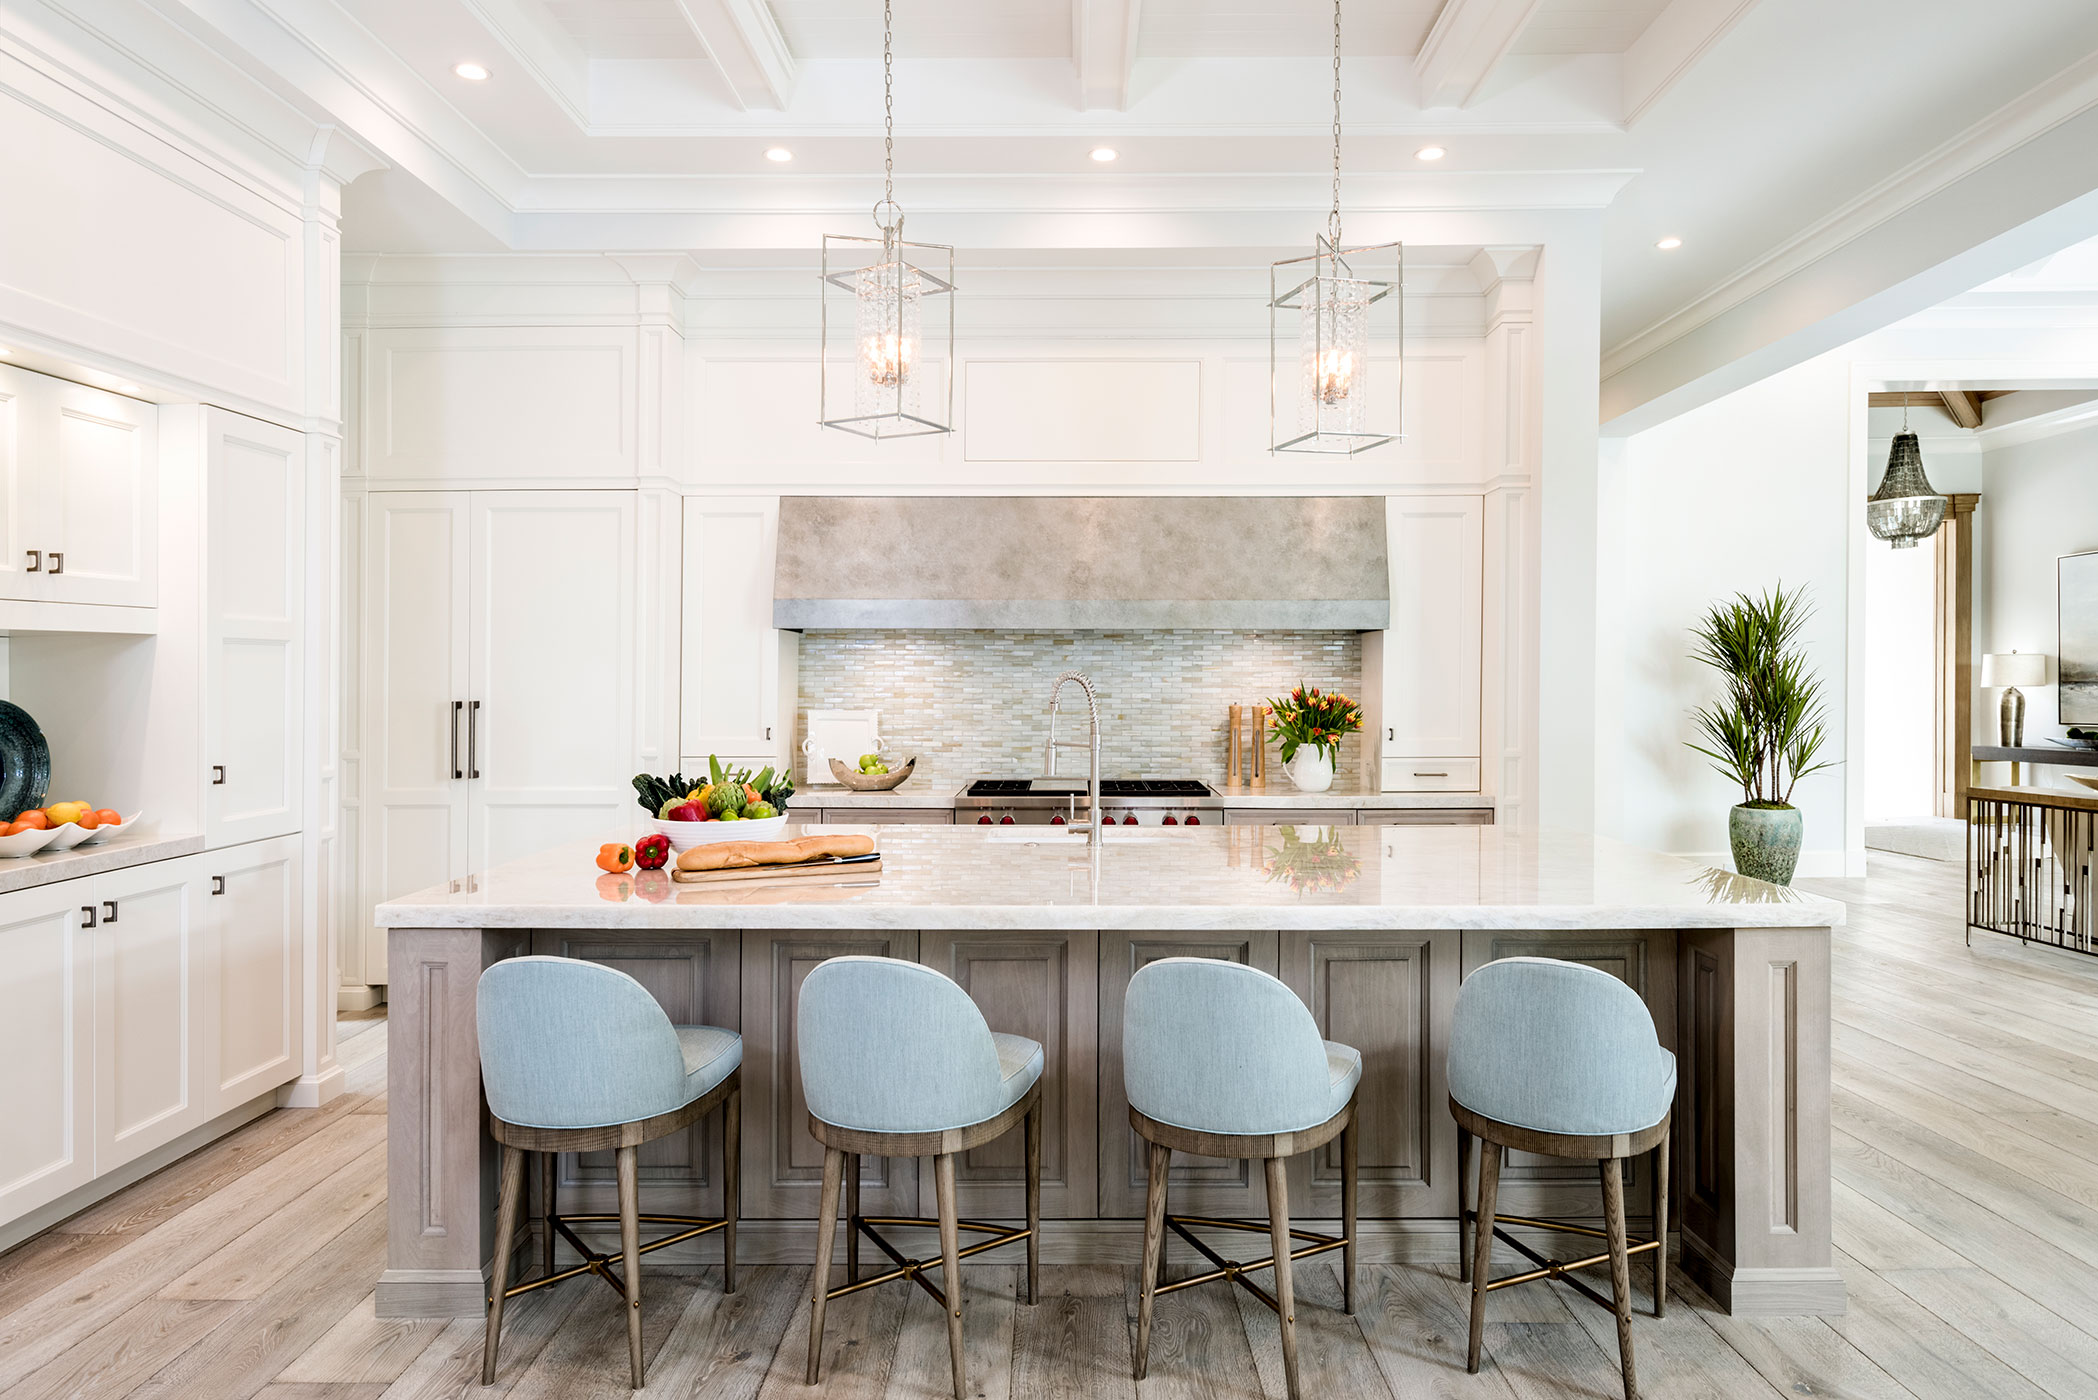 ABOVE: In The Sleek, Clean Lined Kitchen, Counter Stools From Hickory Chair  Clad In A Blue Sunbrella Fabric Pull Up To The Center Island, Finished In  Soft ...